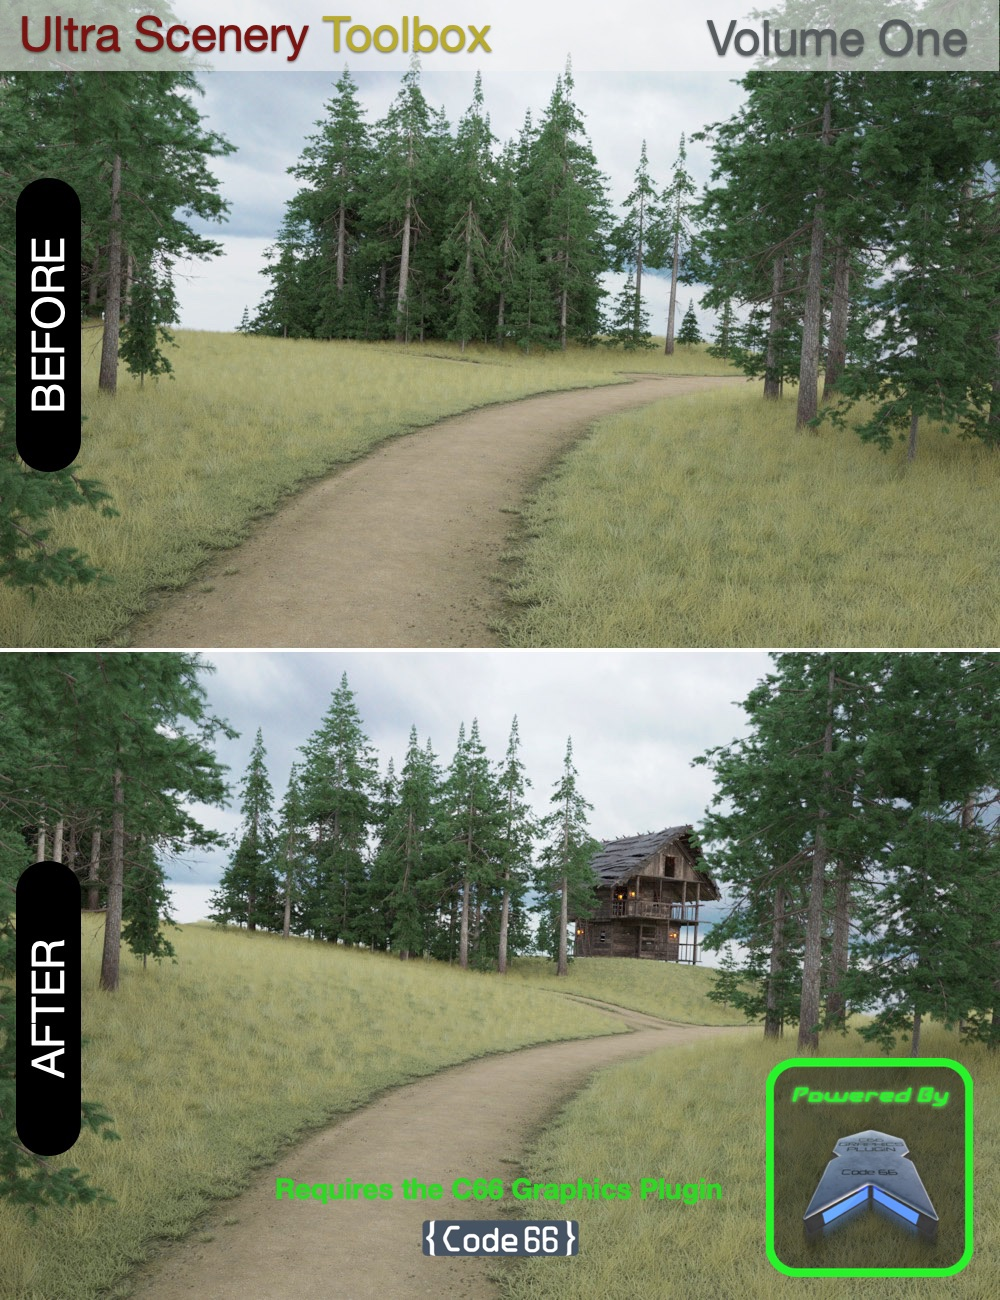 Ultra Scenery Toolbox - Volume One by: Code 66, 3D Models by Daz 3D